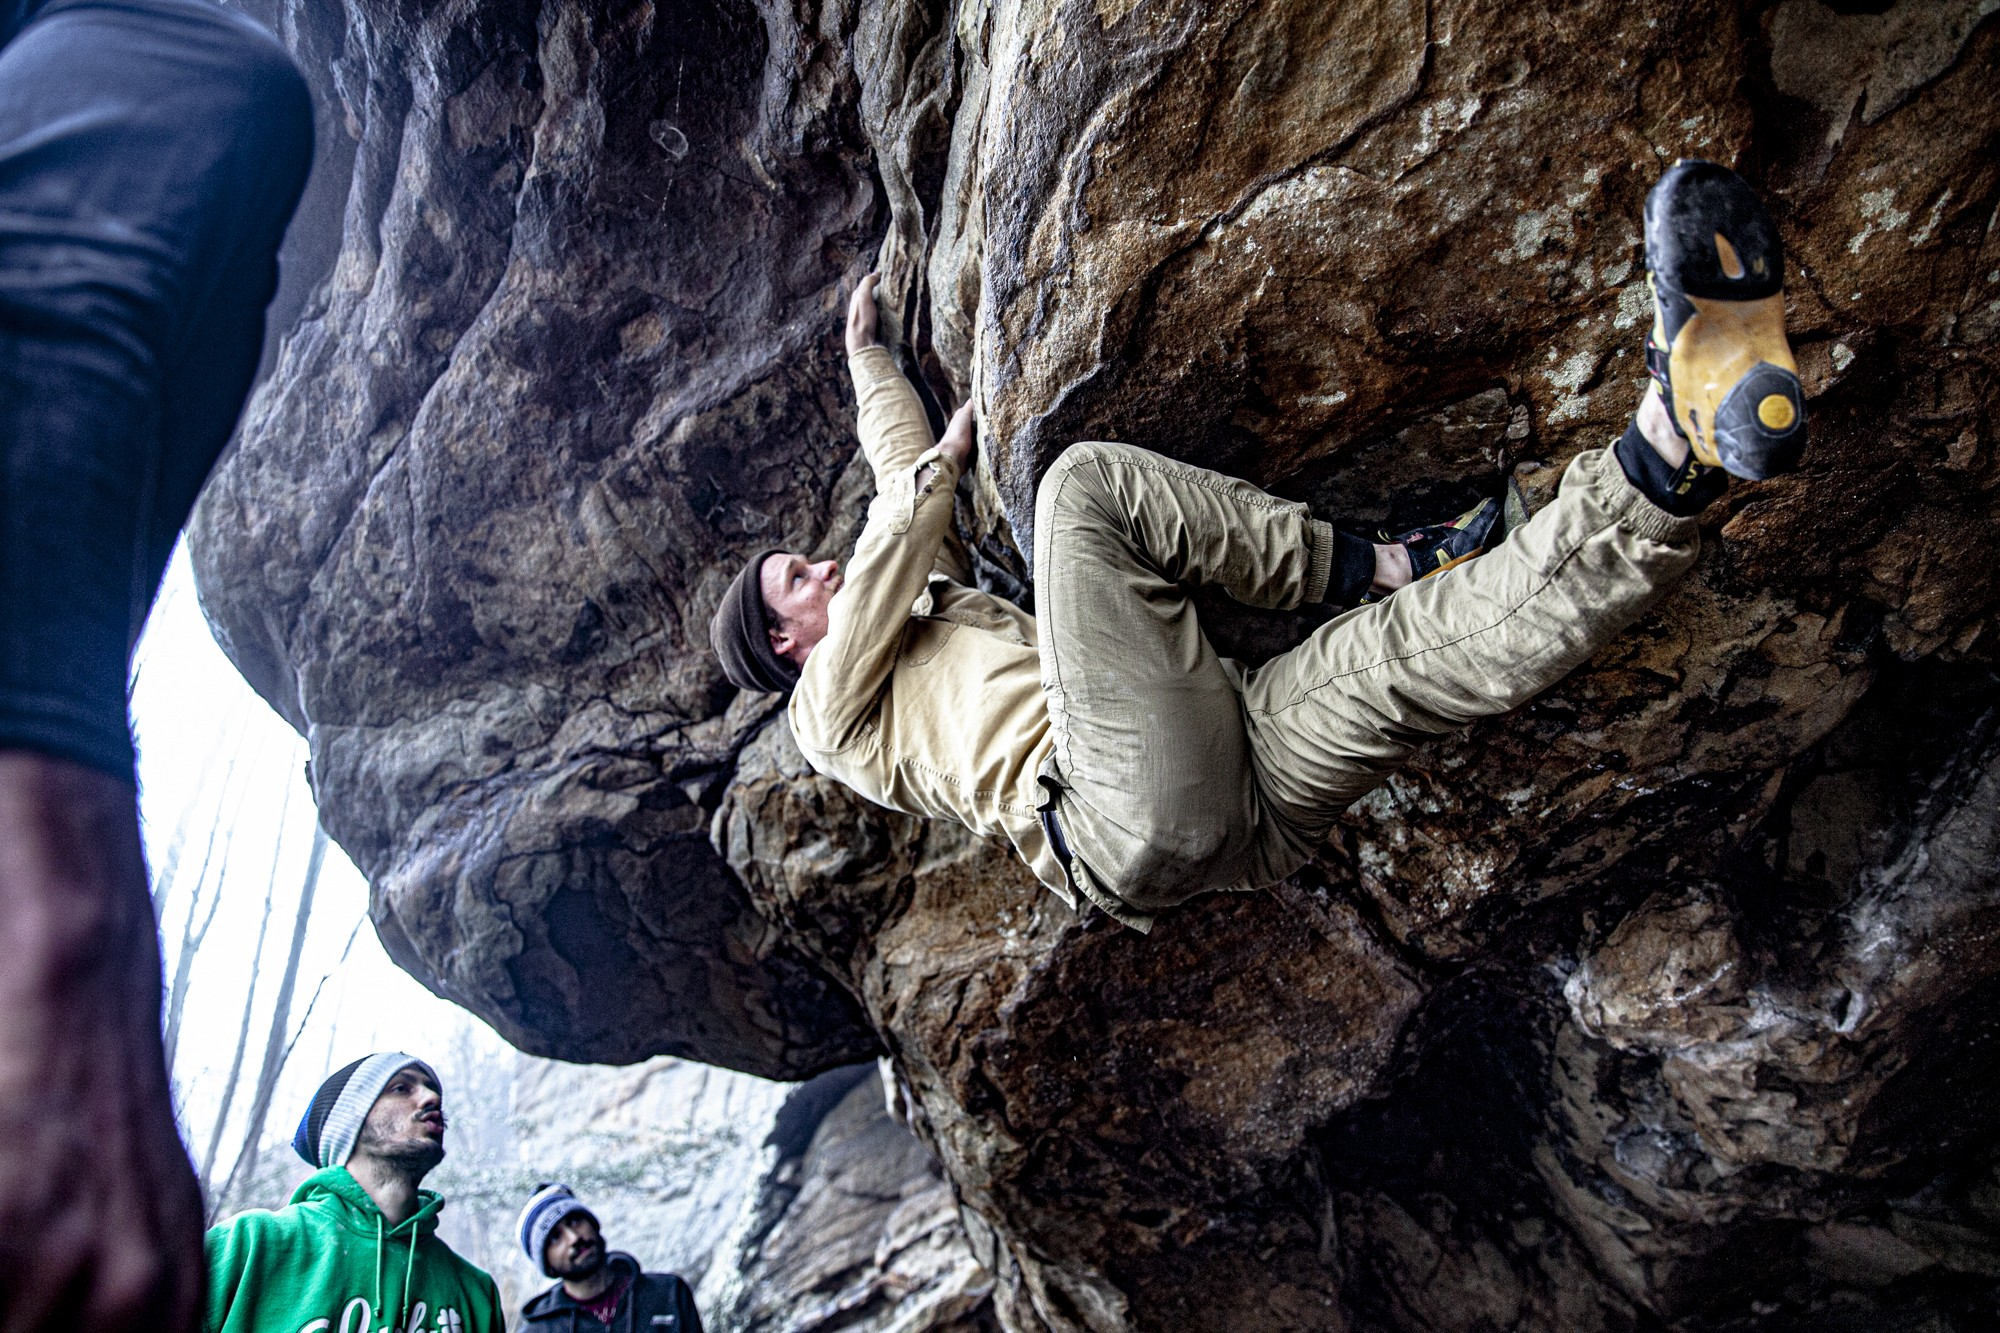 Aaron Warrens, left, Justin Mamaril, middle, and Jarrod Mamaril, right, watch and support Jason Voss as he climbs a boulder problem at Johnny Chimpo in New River Gorge, West Virginia on Saturday, Feb. 28, 2021. Voss was the only one able to finish the boulder problem on that rainy day, even after more than five hours of attmepts.